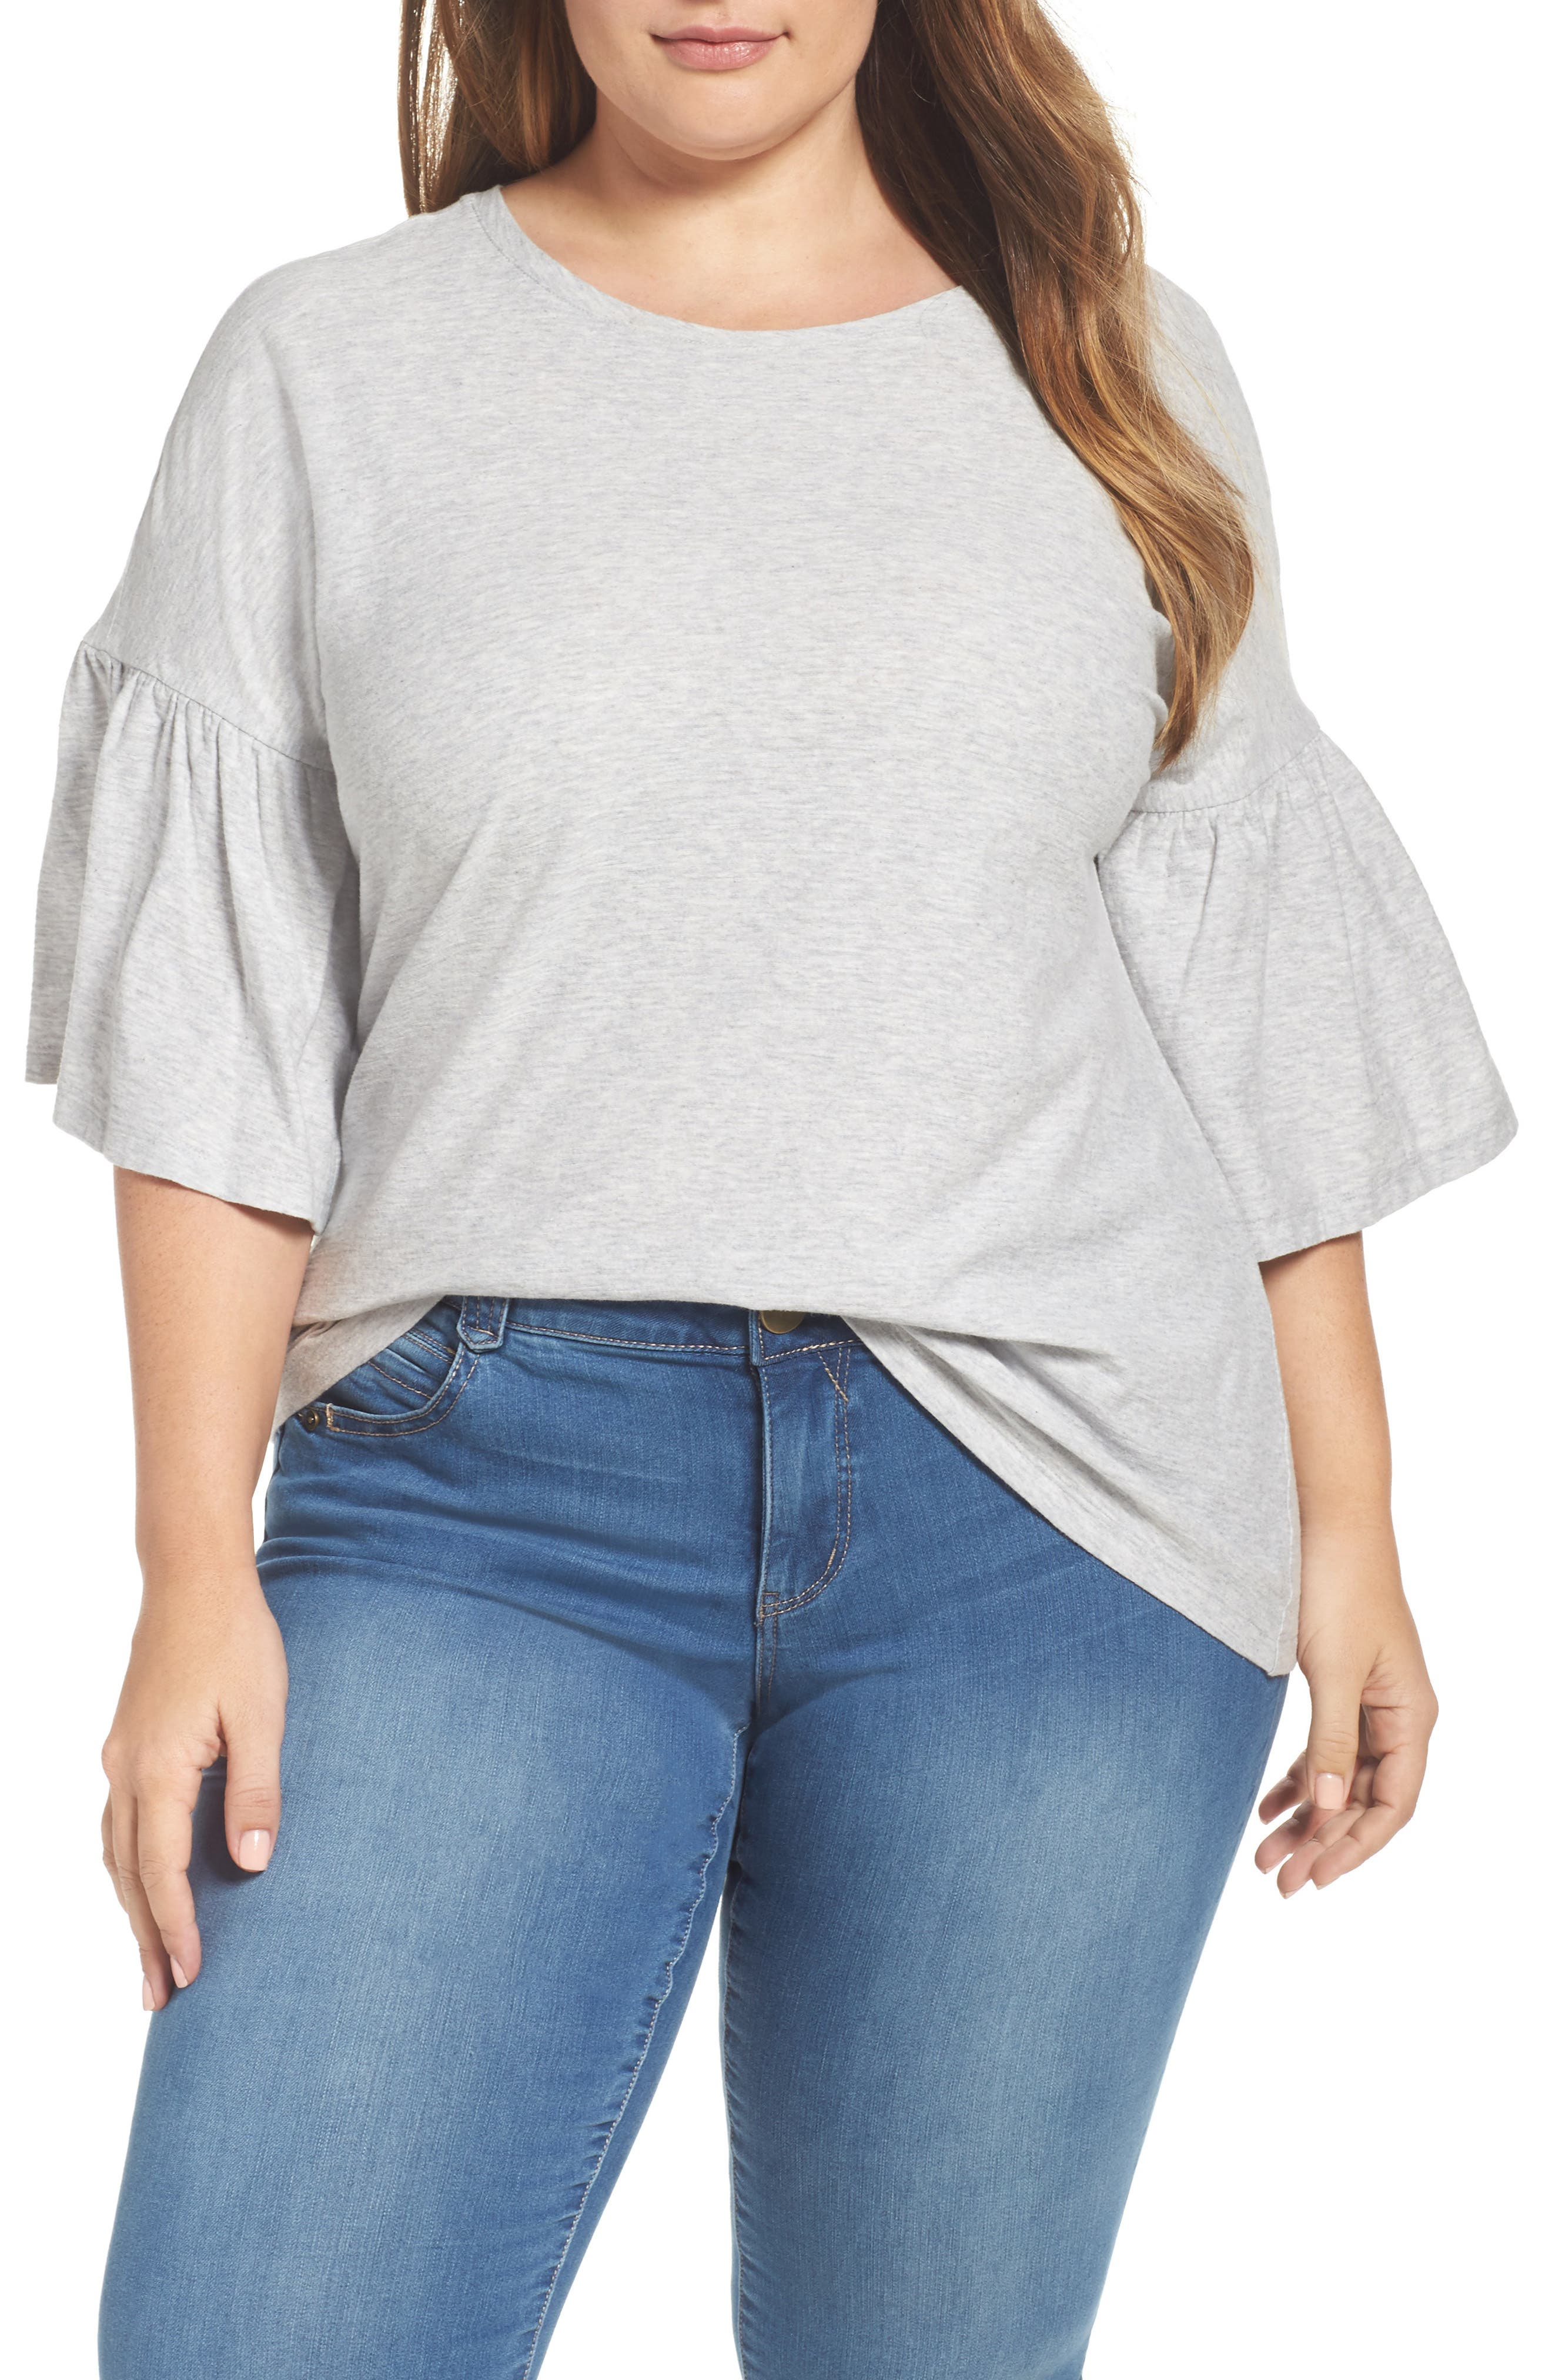 Vince Camuto Relaxed Bell Sleeve Cotton Tee (Plus Size)